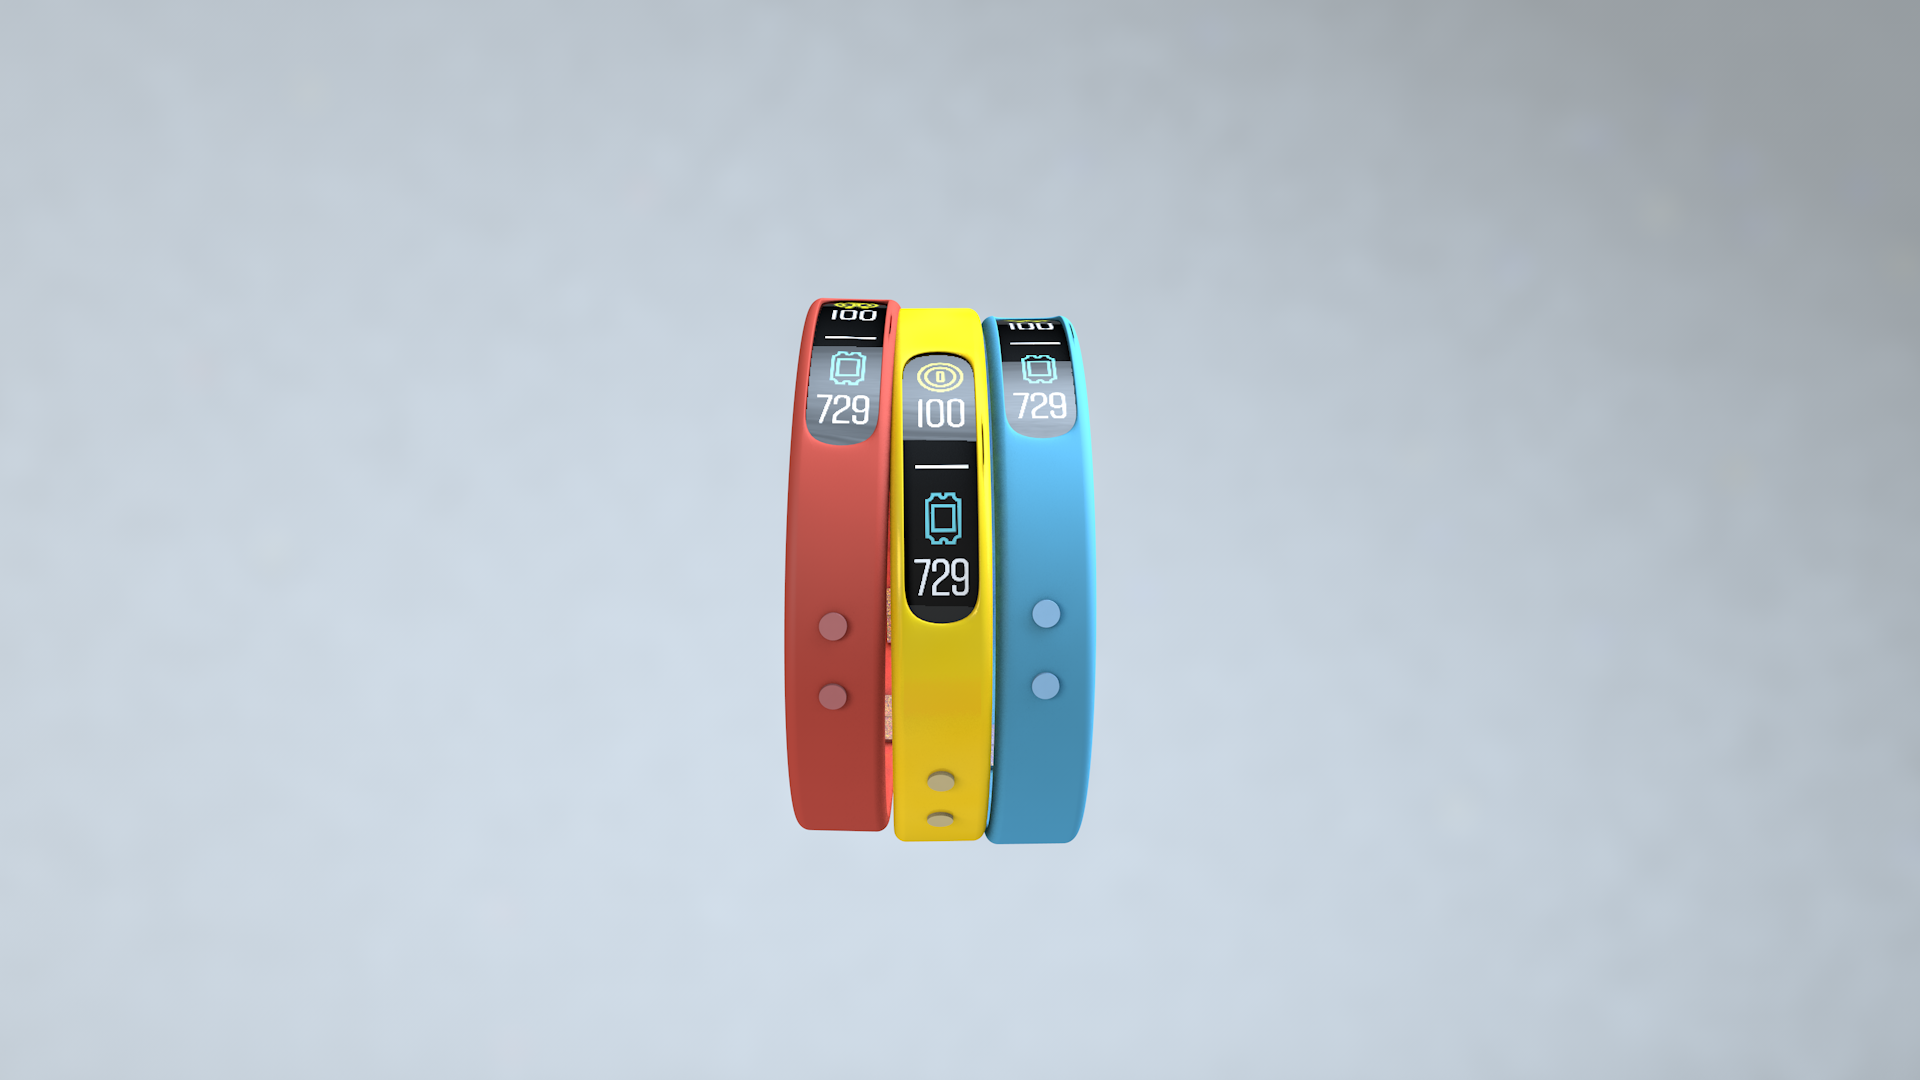 Multi-functional wristbands set up player profiles. They store personal information, send alerts and notifications,track movements, and collect data.